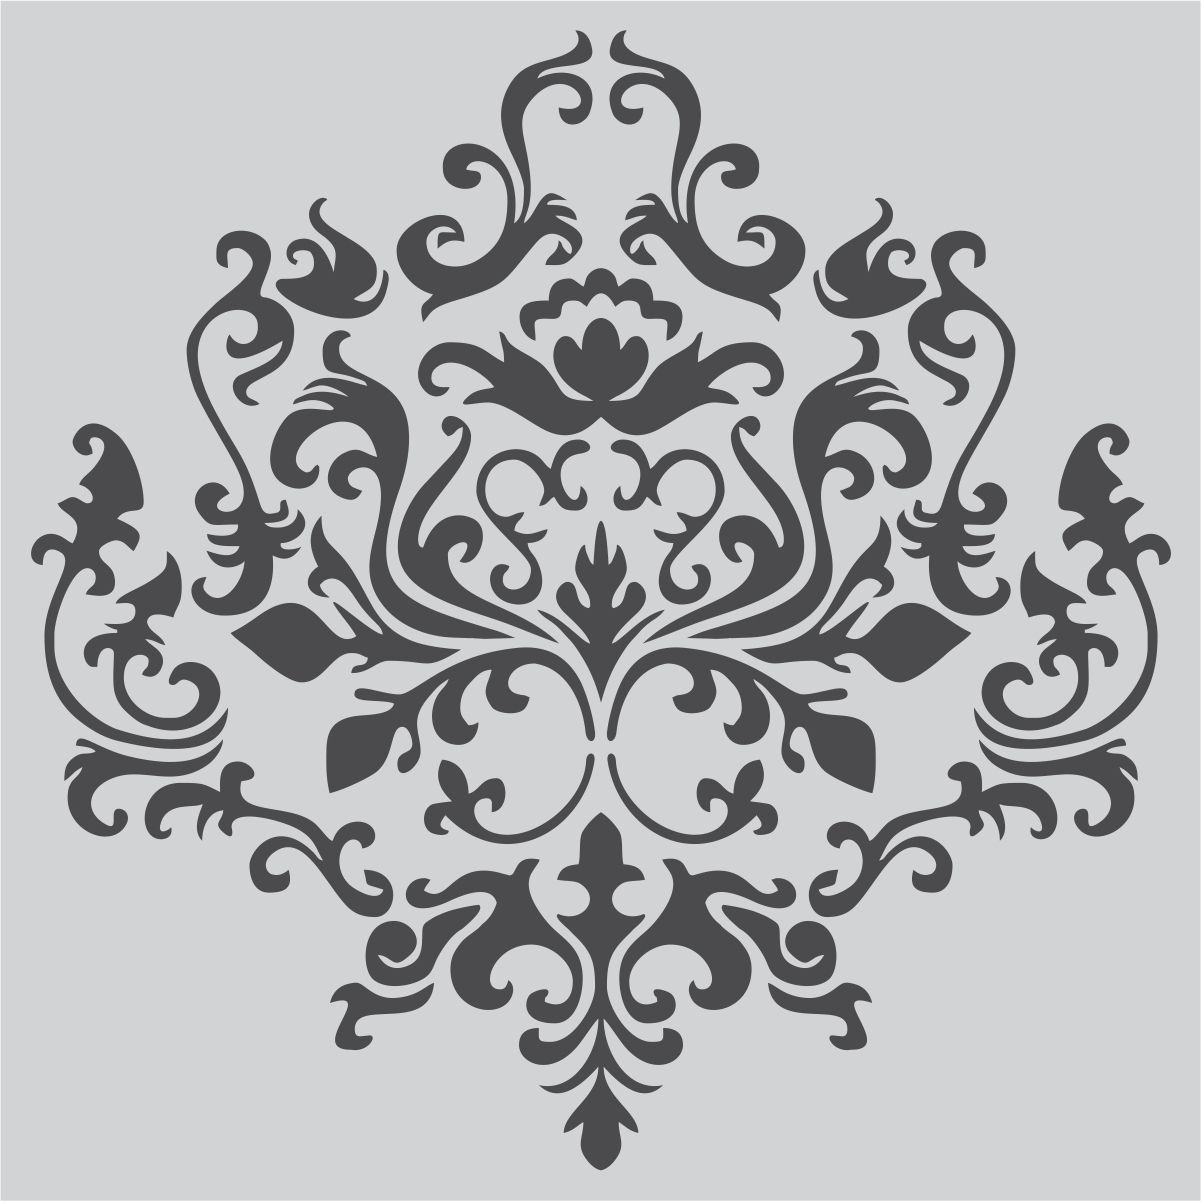 Pochoir Mandala Mural Damask Wall Stencil Choose Your Size Faux Mural Pattern